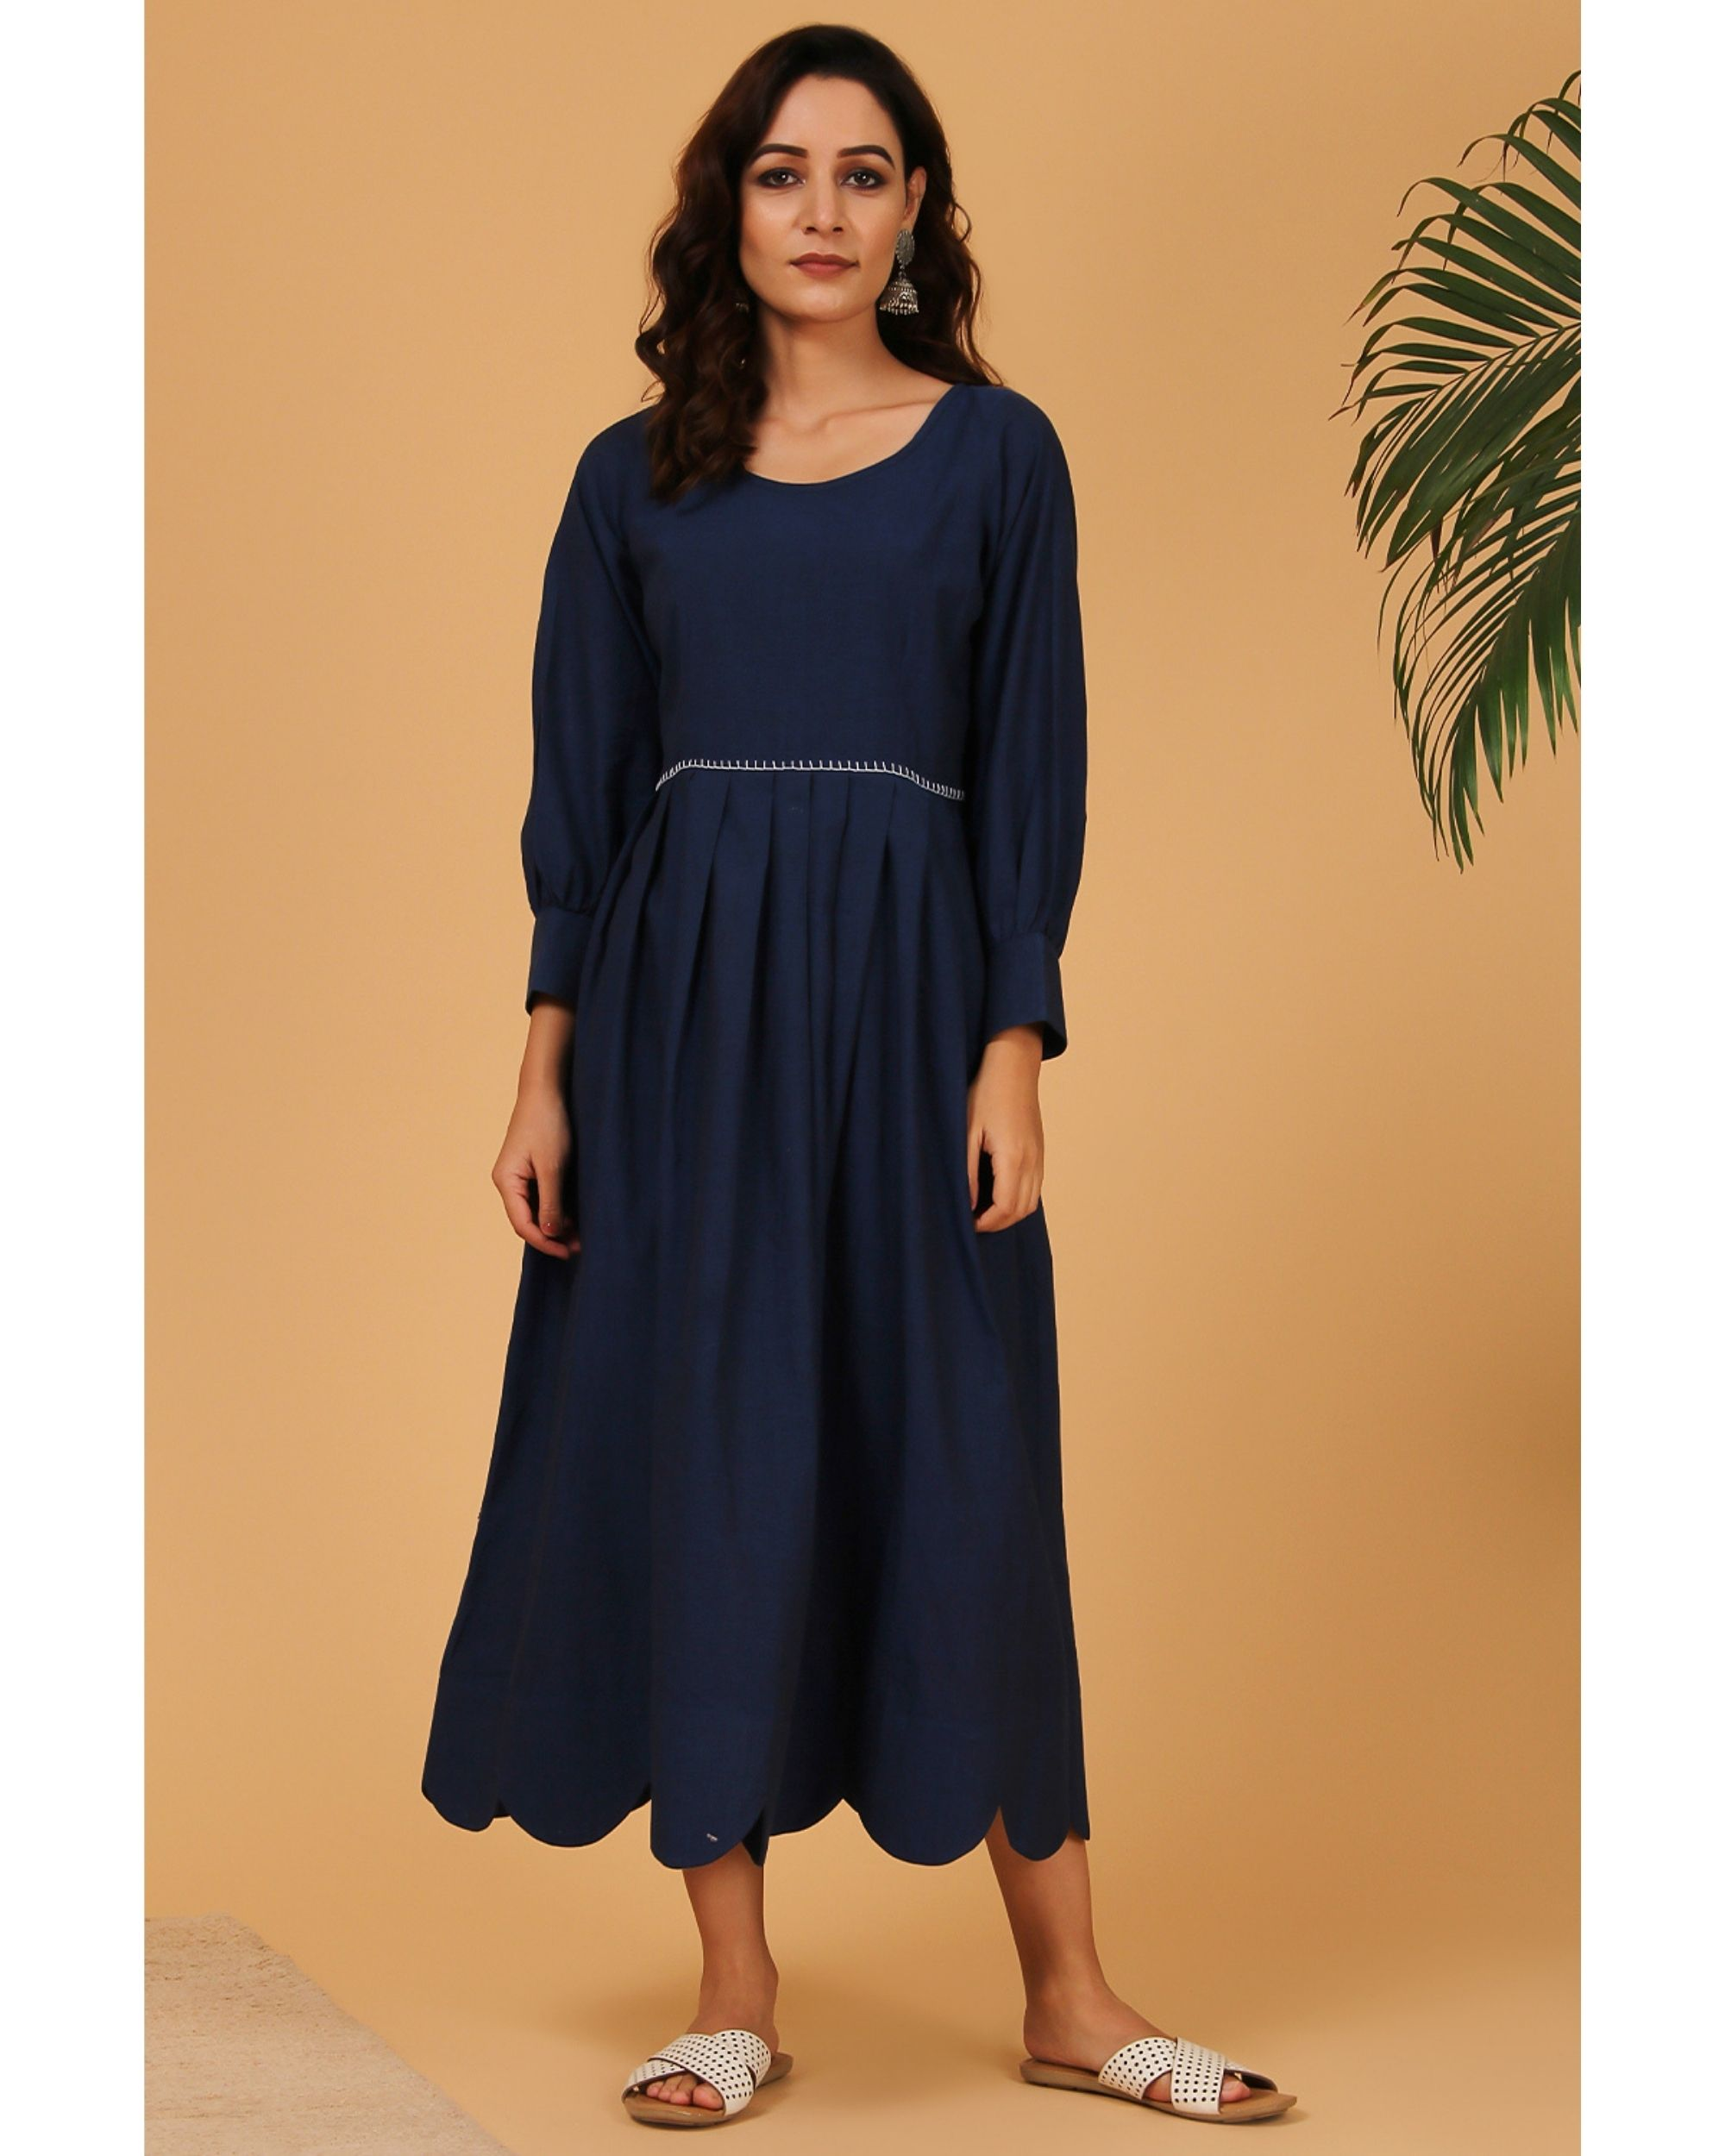 Navy blue pleated scalloped dress